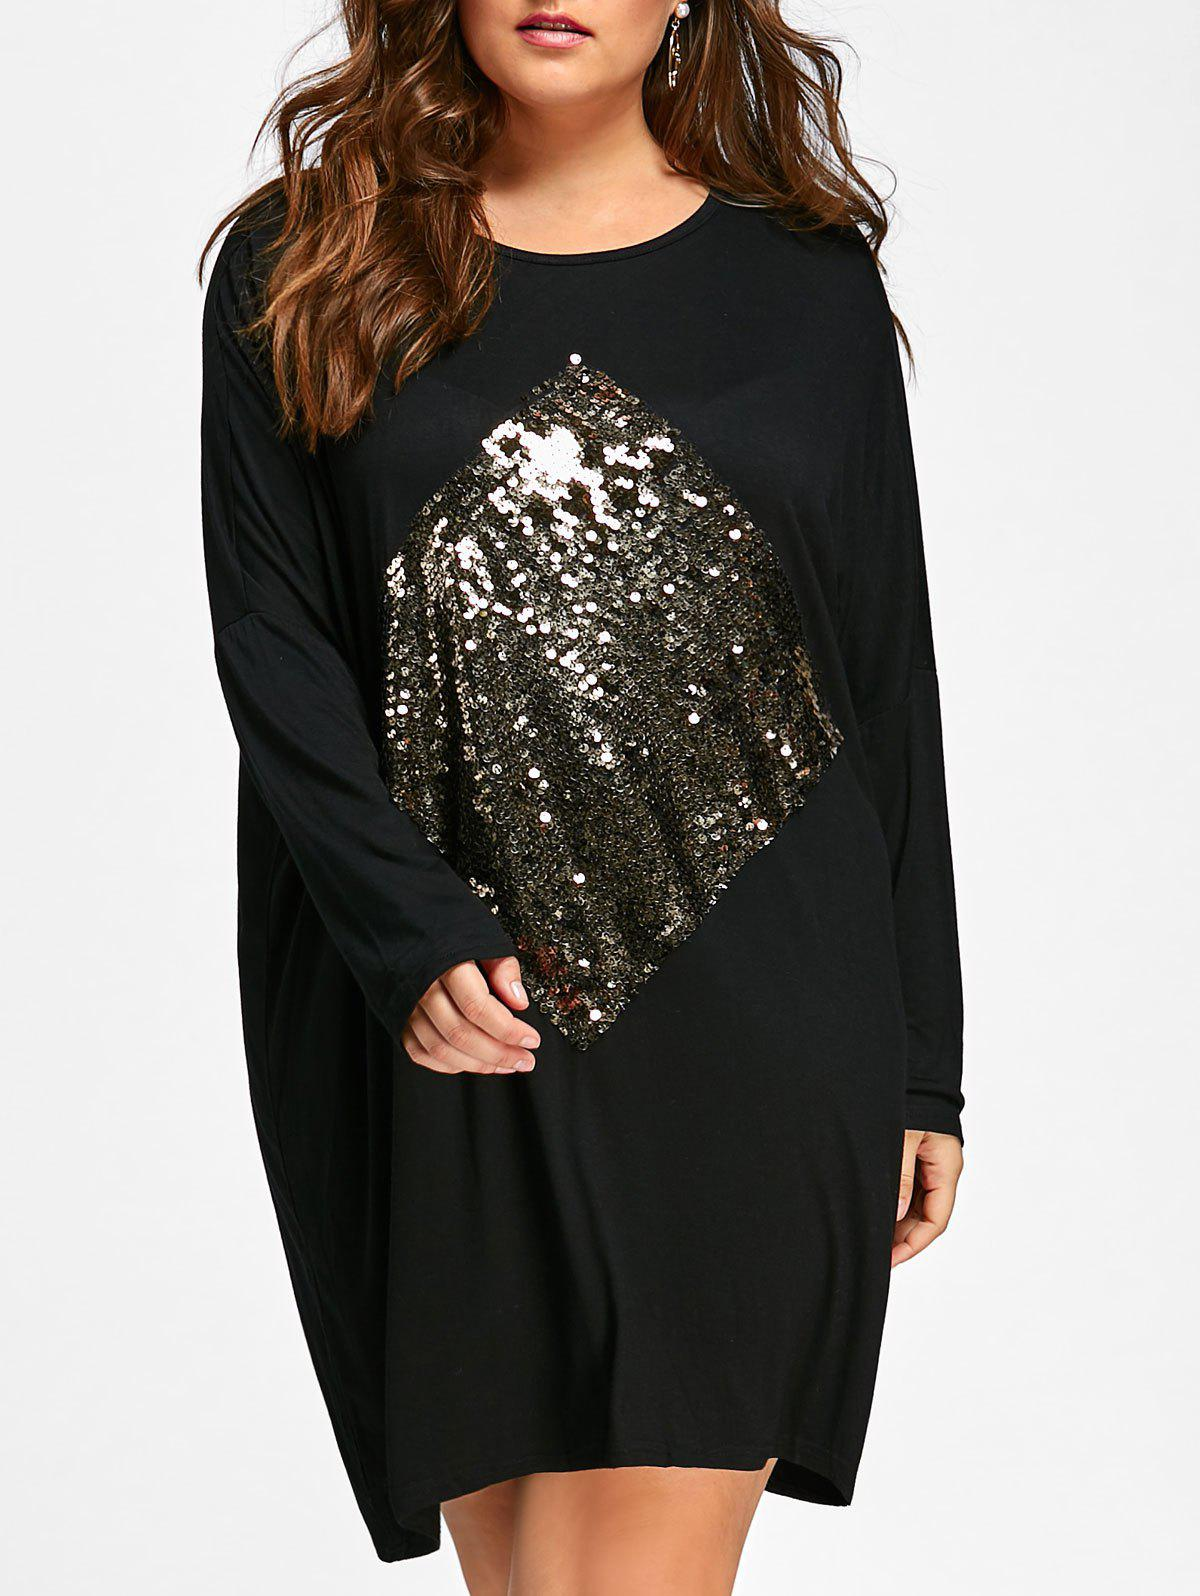 Plus Size Sequin Embellished Long Sleeve Tunic DressWOMEN<br><br>Size: ONE SIZE; Color: BLACK; Style: Casual; Material: Polyester; Silhouette: Straight; Dresses Length: Mini; Neckline: Scoop Neck; Sleeve Length: Long Sleeves; Embellishment: Sequins; Pattern Type: Argyle; With Belt: No; Season: Fall,Spring; Weight: 0.4200kg; Package Contents: 1 x Dress;